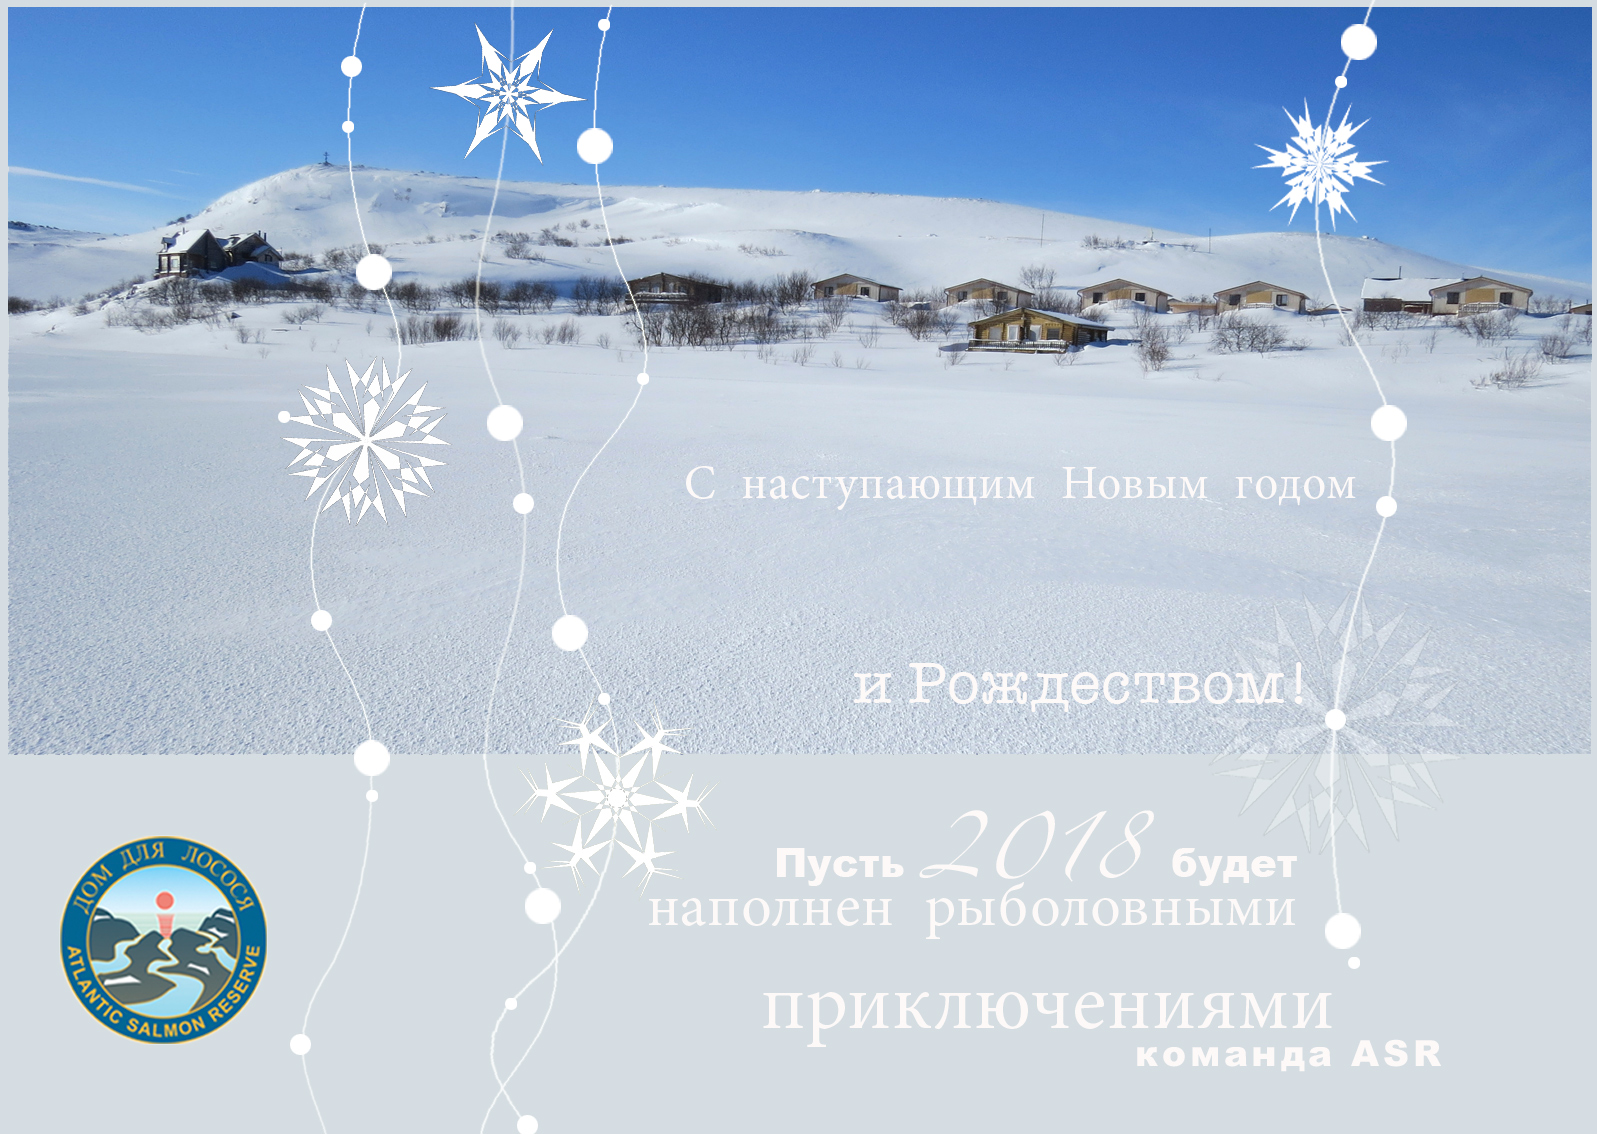 christmascard_2017_ru